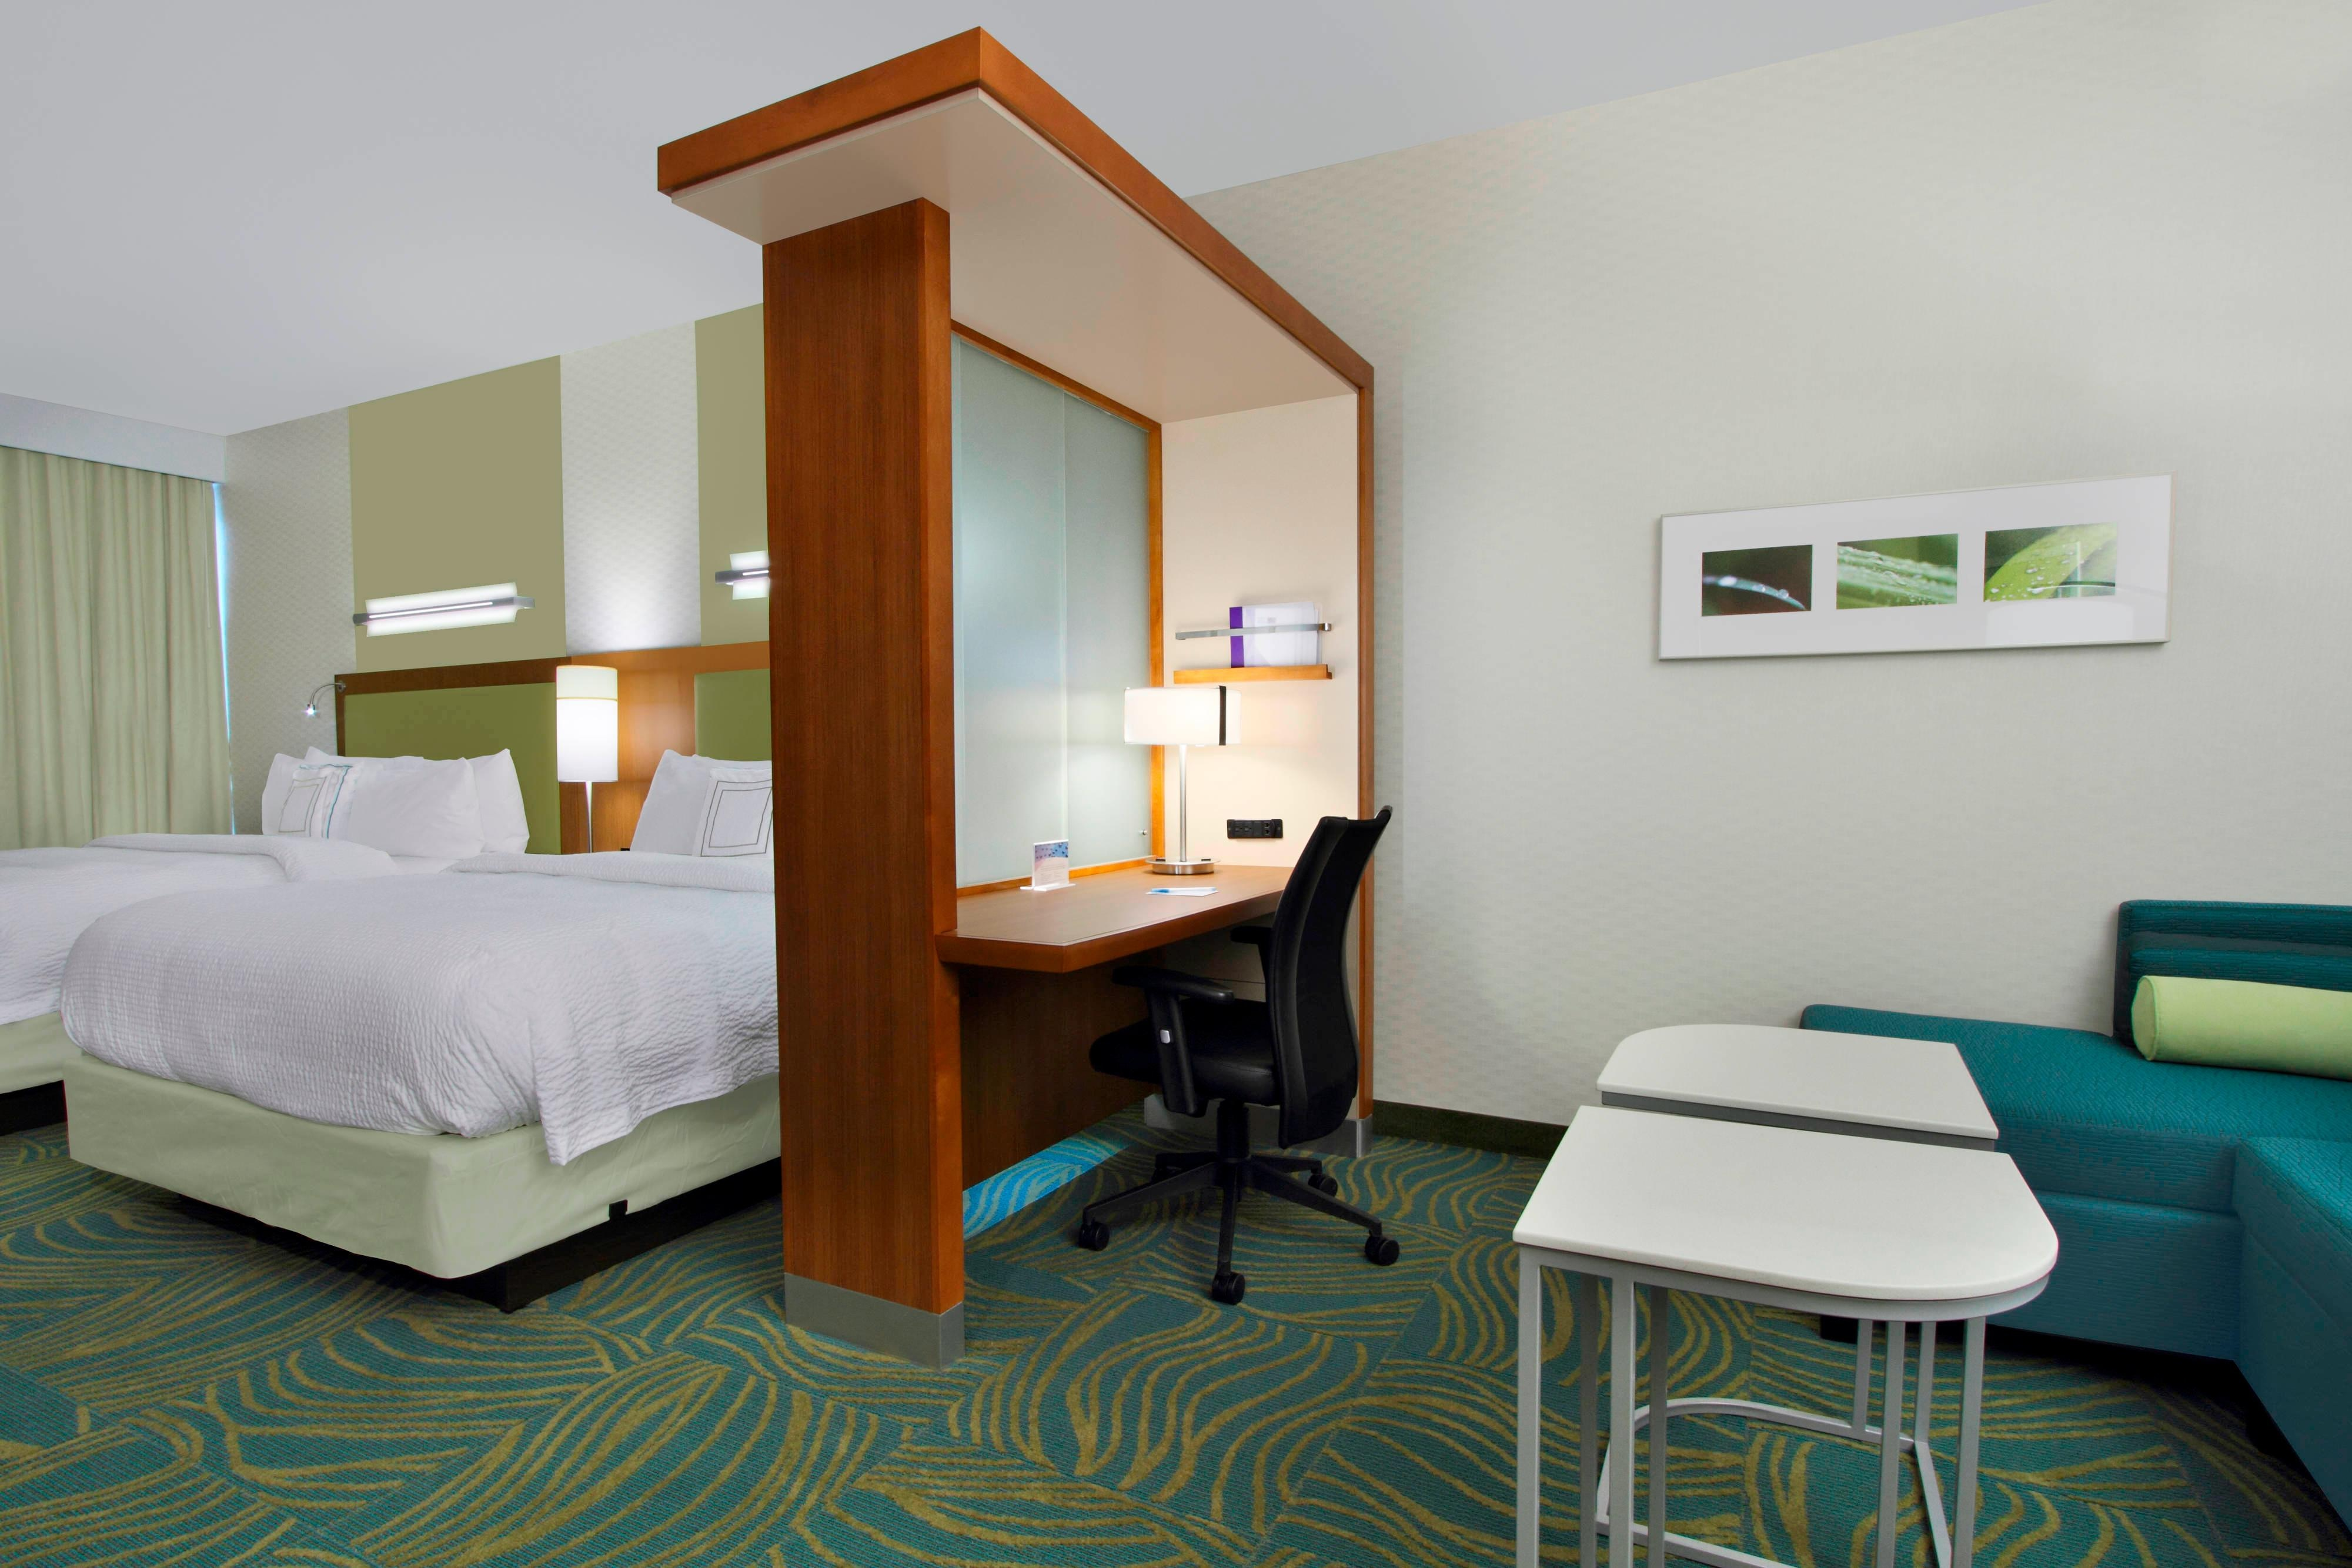 Houston Energy Corridor Hotel Springhill Suites